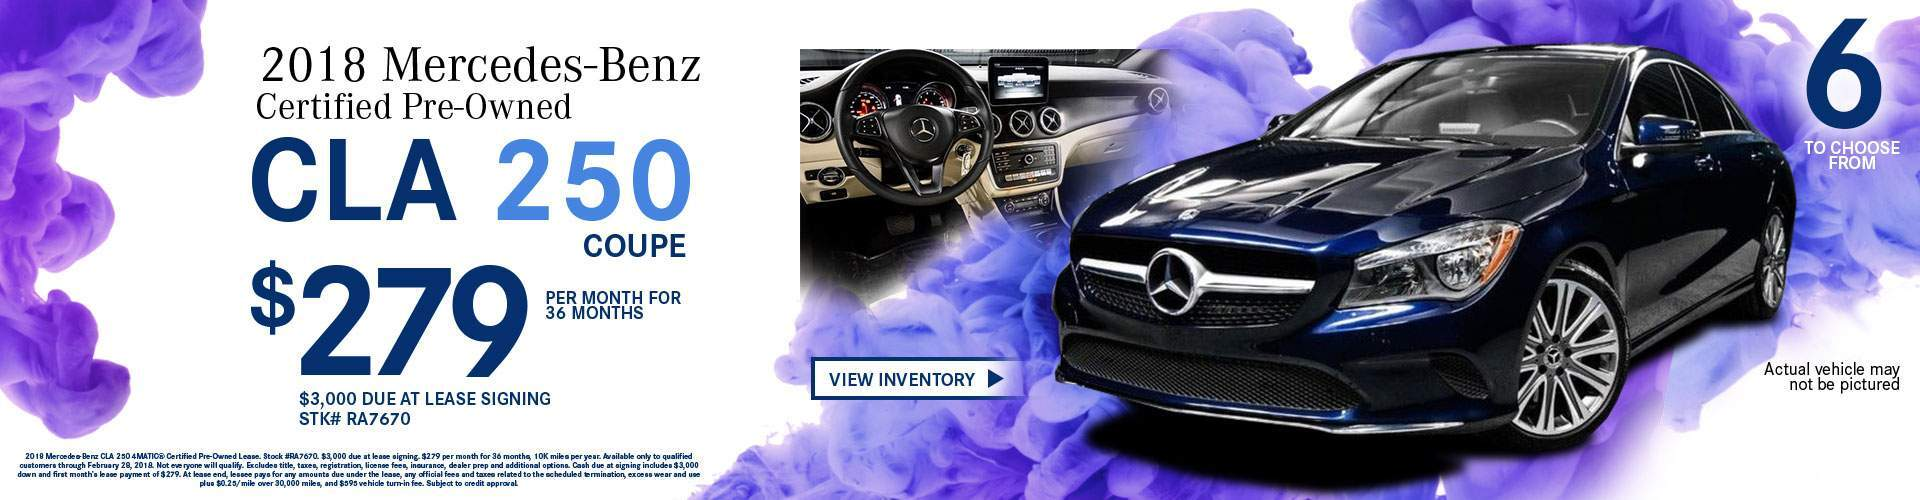 2018 Mercedes-Benz Certified Pre-Owned CLA 250 4MATIC Coupe